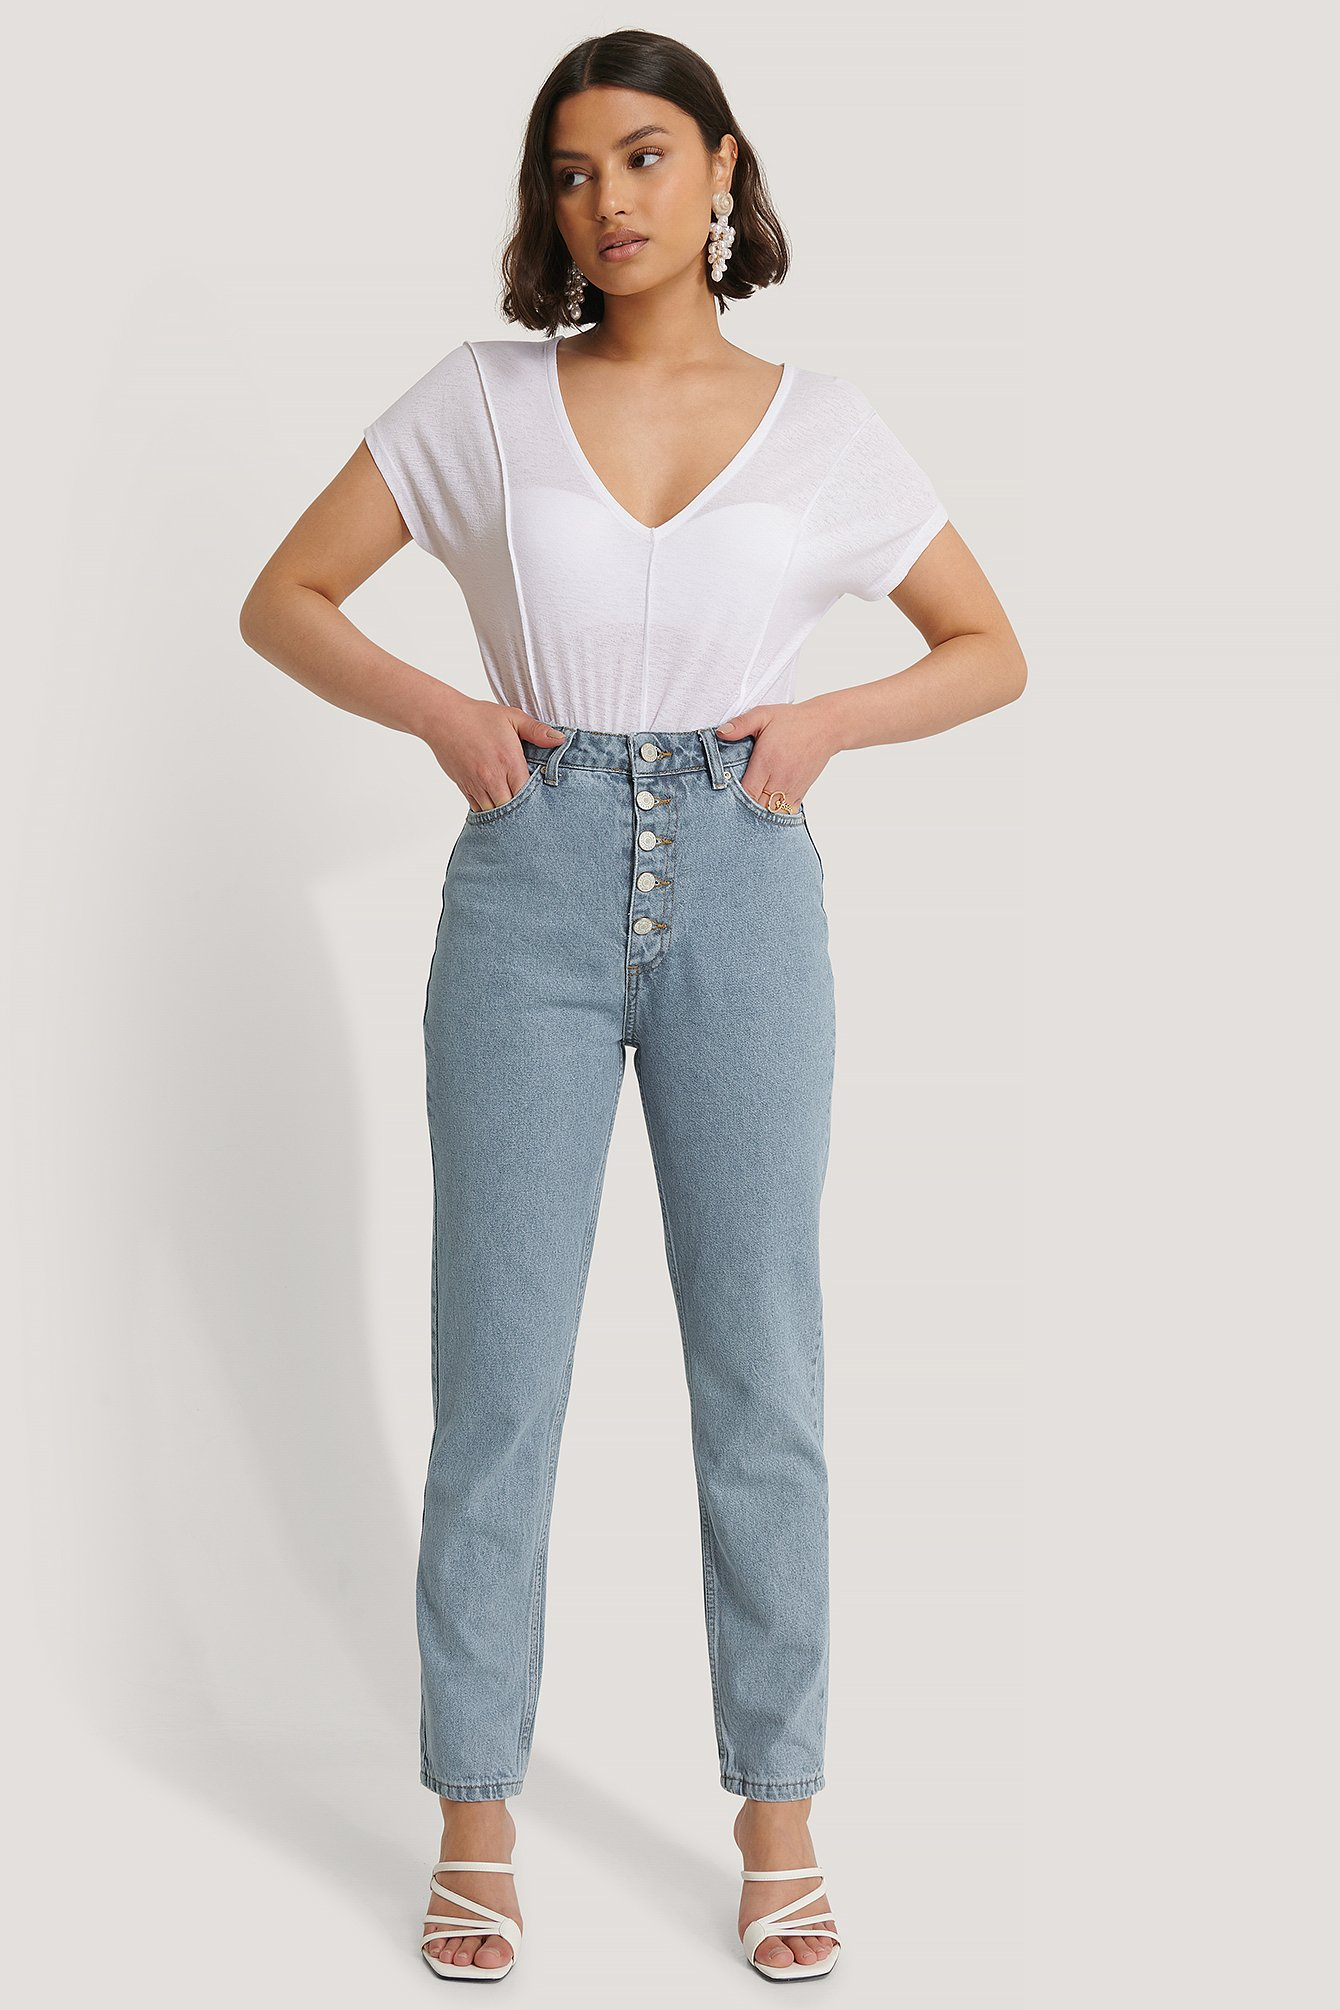 Blue Skinny Jeans Hohe Taille Knopf Vorne